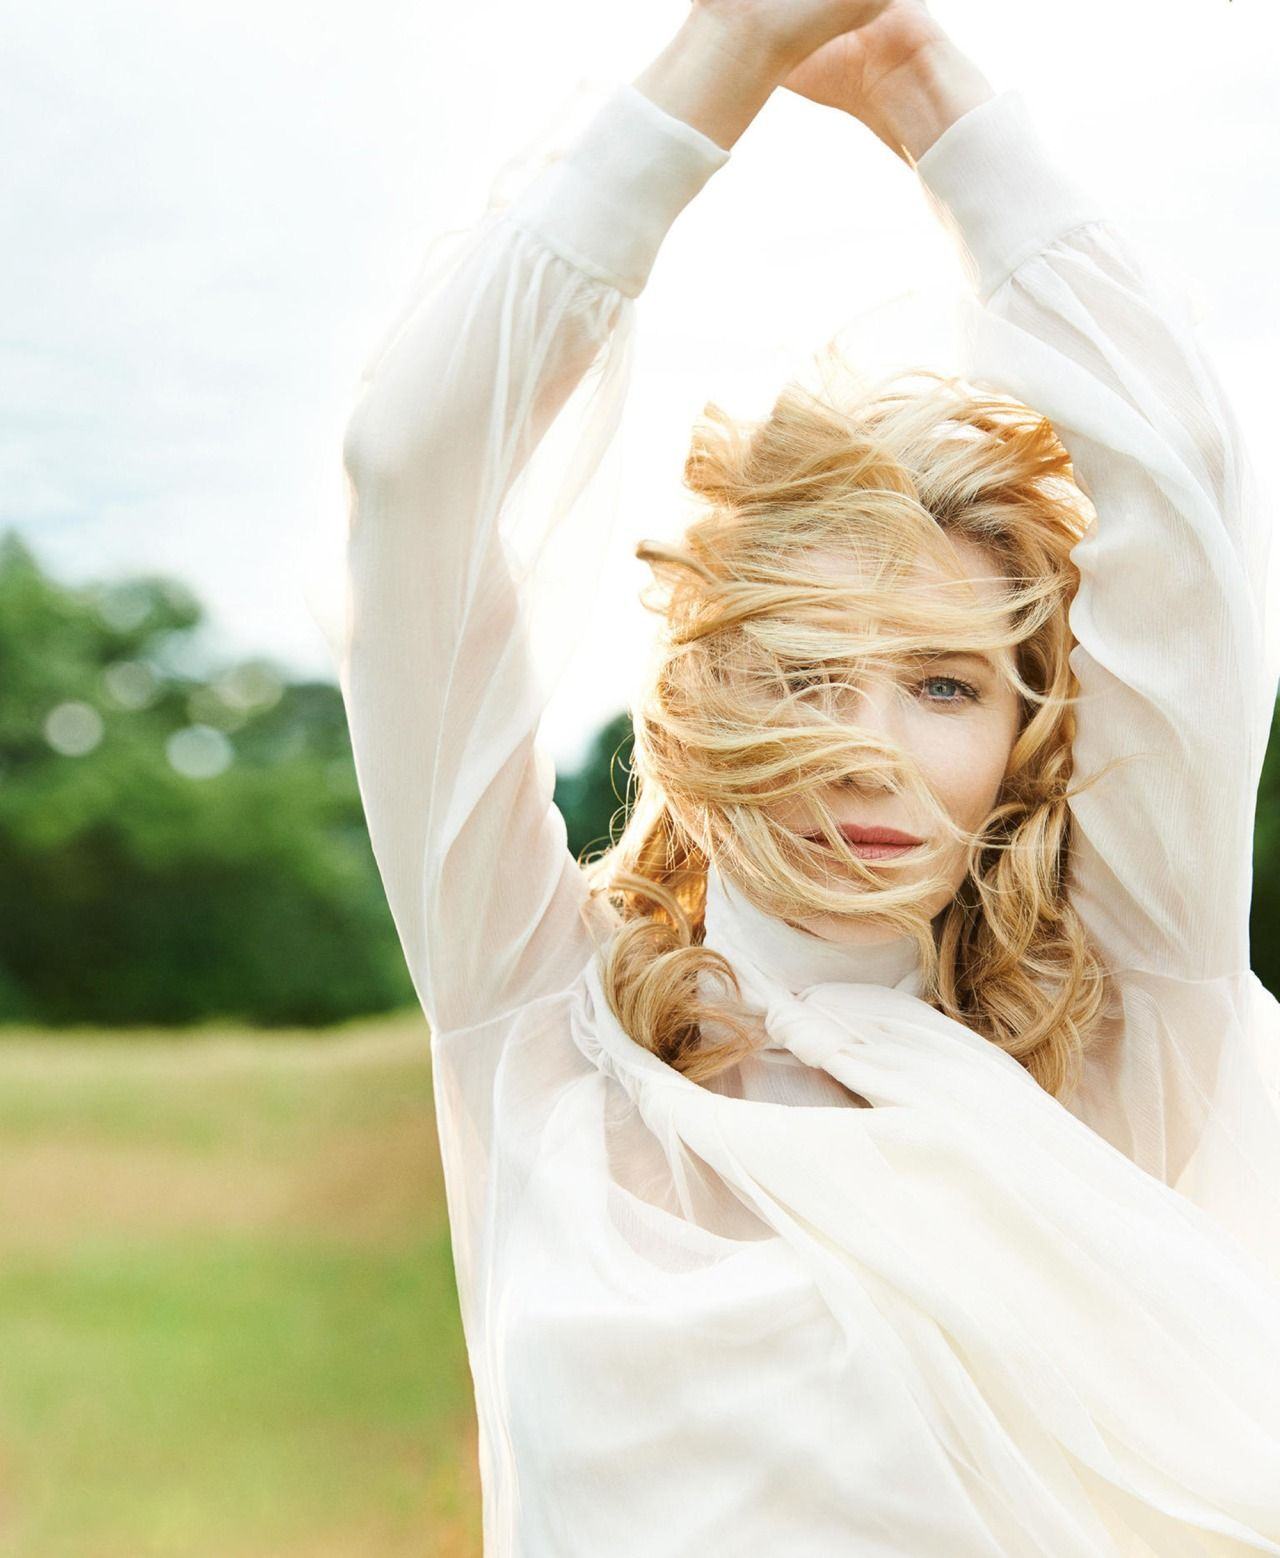 Cate Blanchett / Photographed by Ryan McGinley / For Porter Magazine Winter Escape 2014